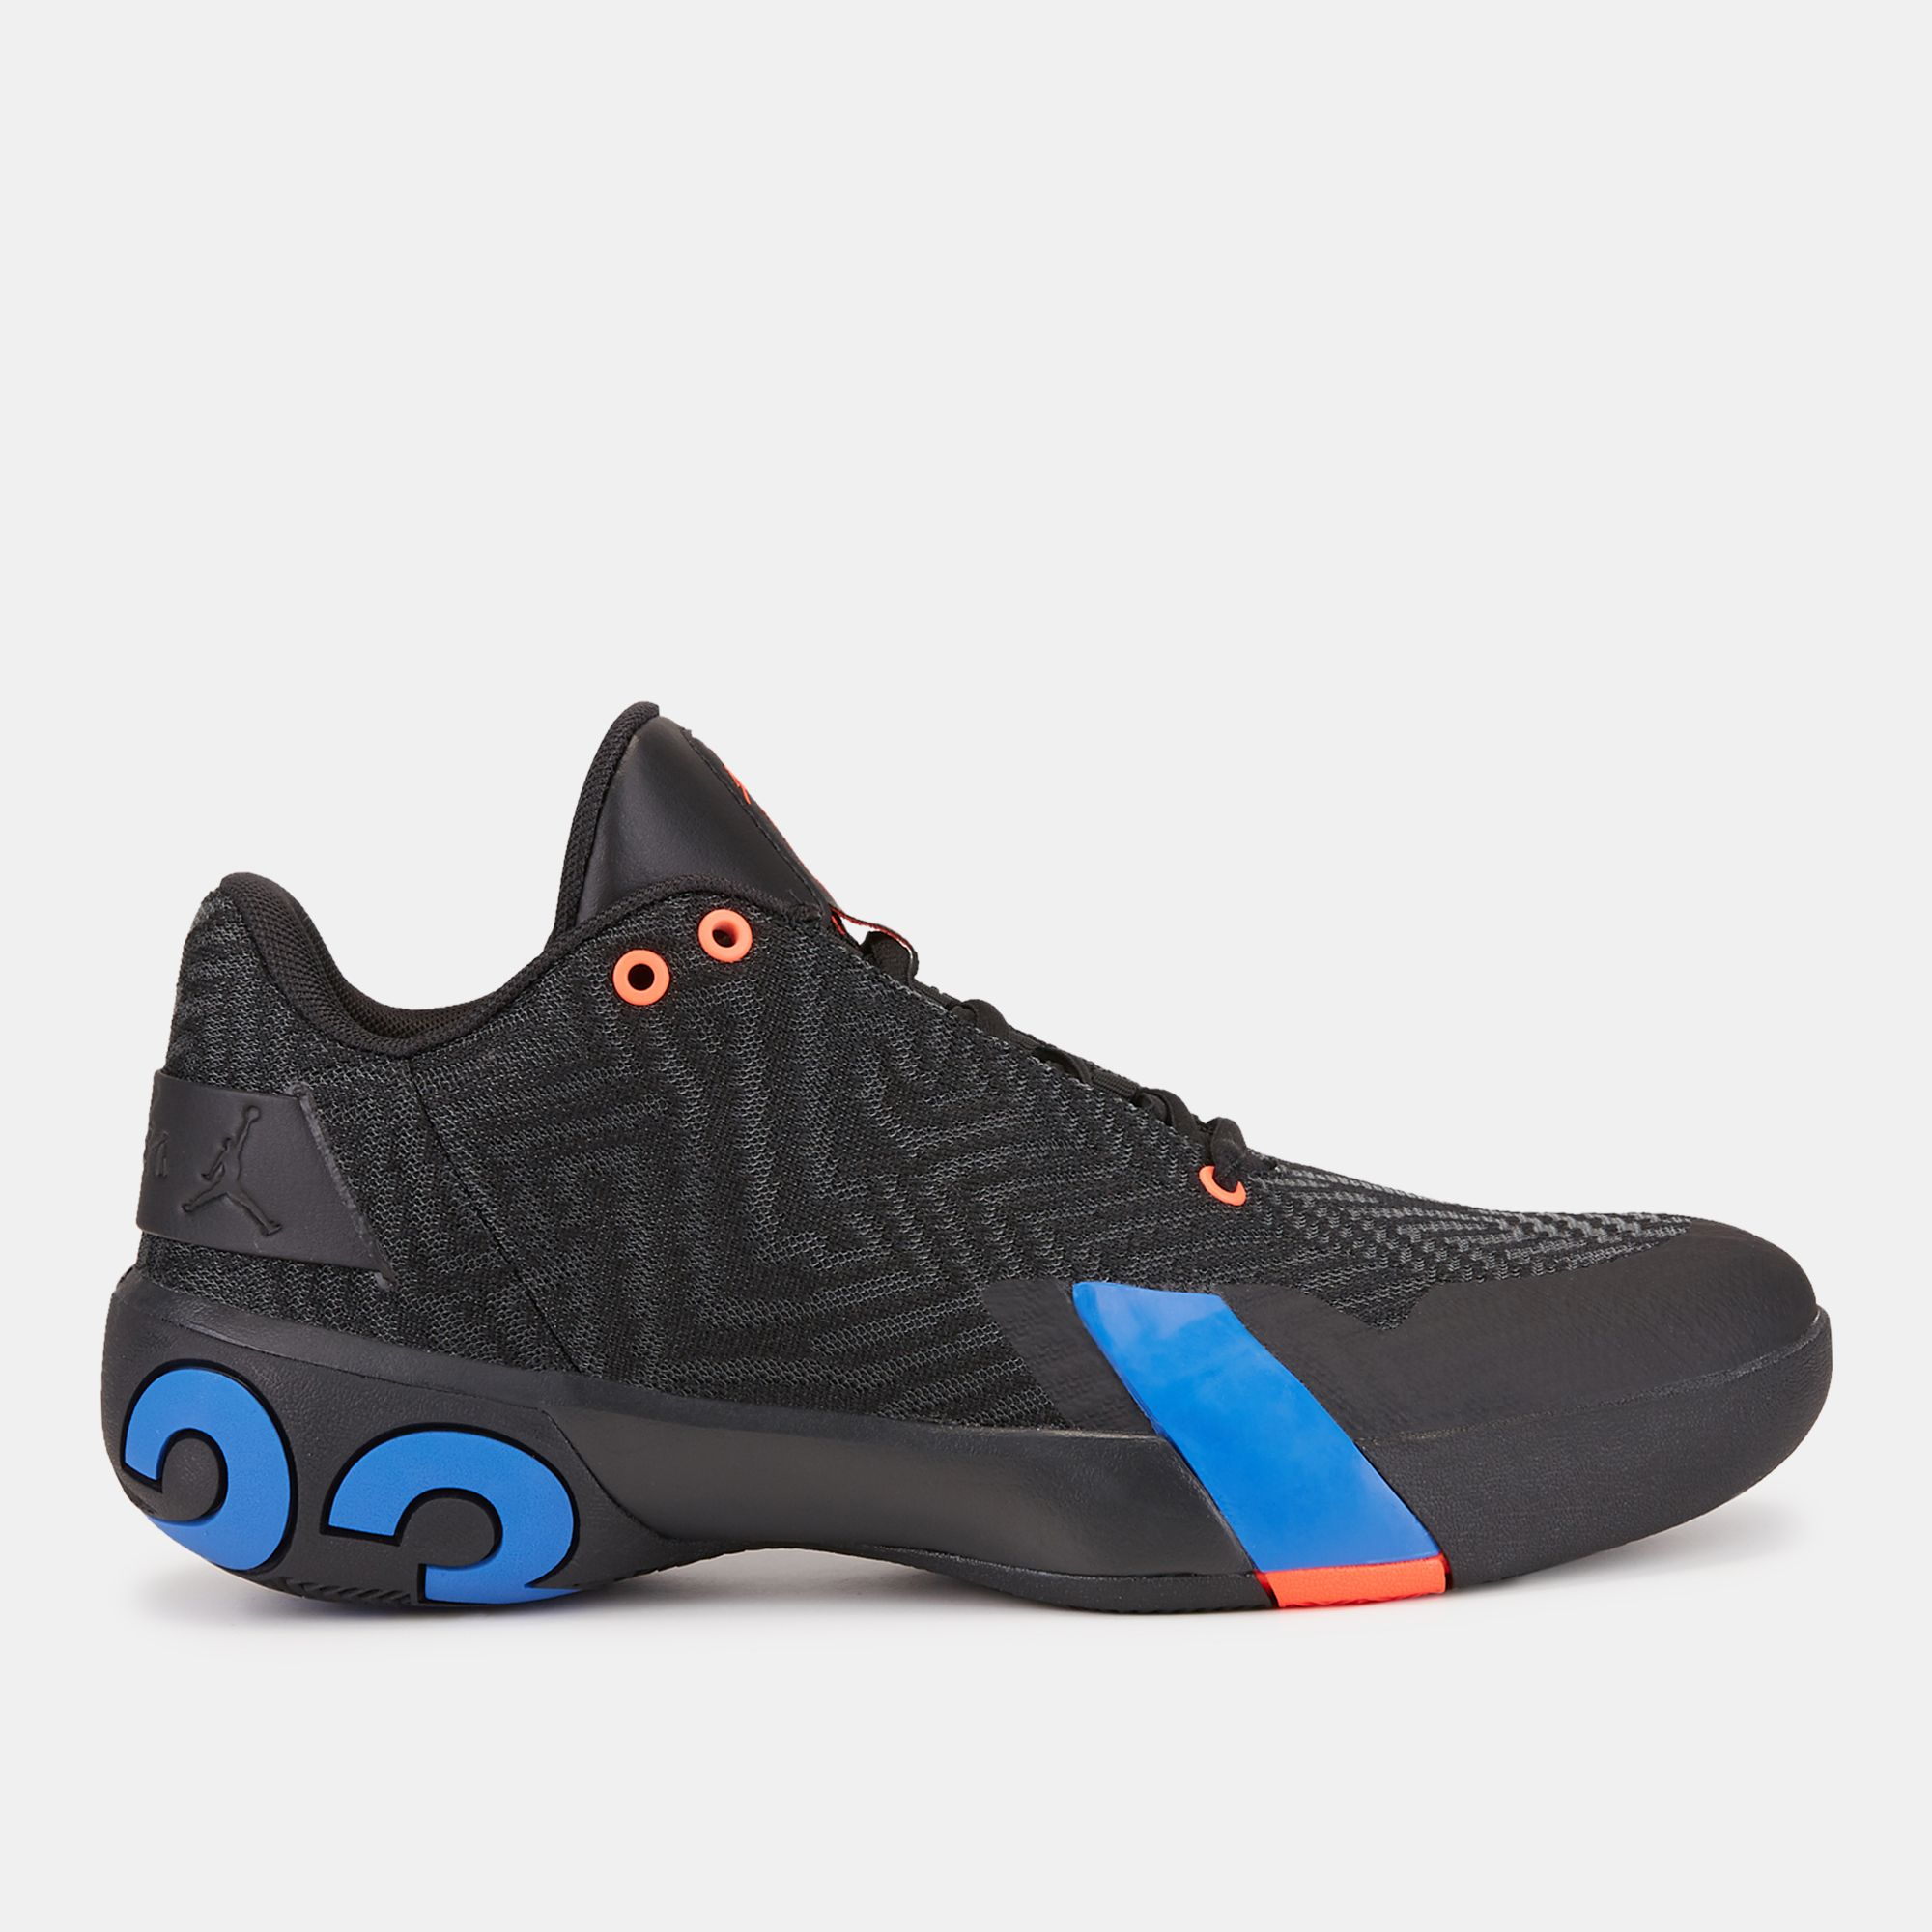 039fda62717 Jordan Men's Ultra Fly 3 Low Shoe | Basketball Shoes | Shoes | Men's ...